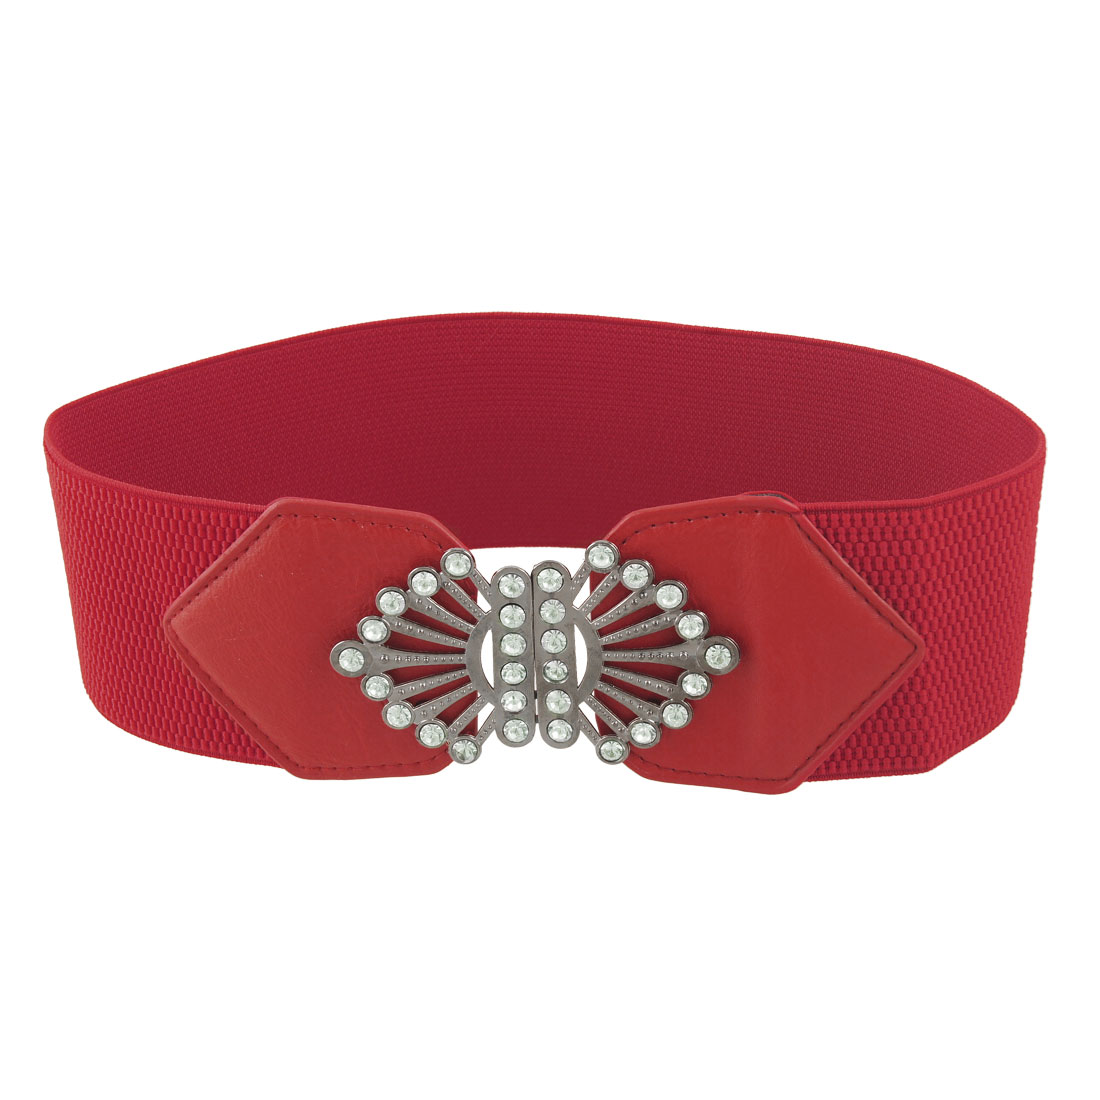 Ladies Rhinestone Inlaid Metal Buckle Stretchy Waist Belt Red